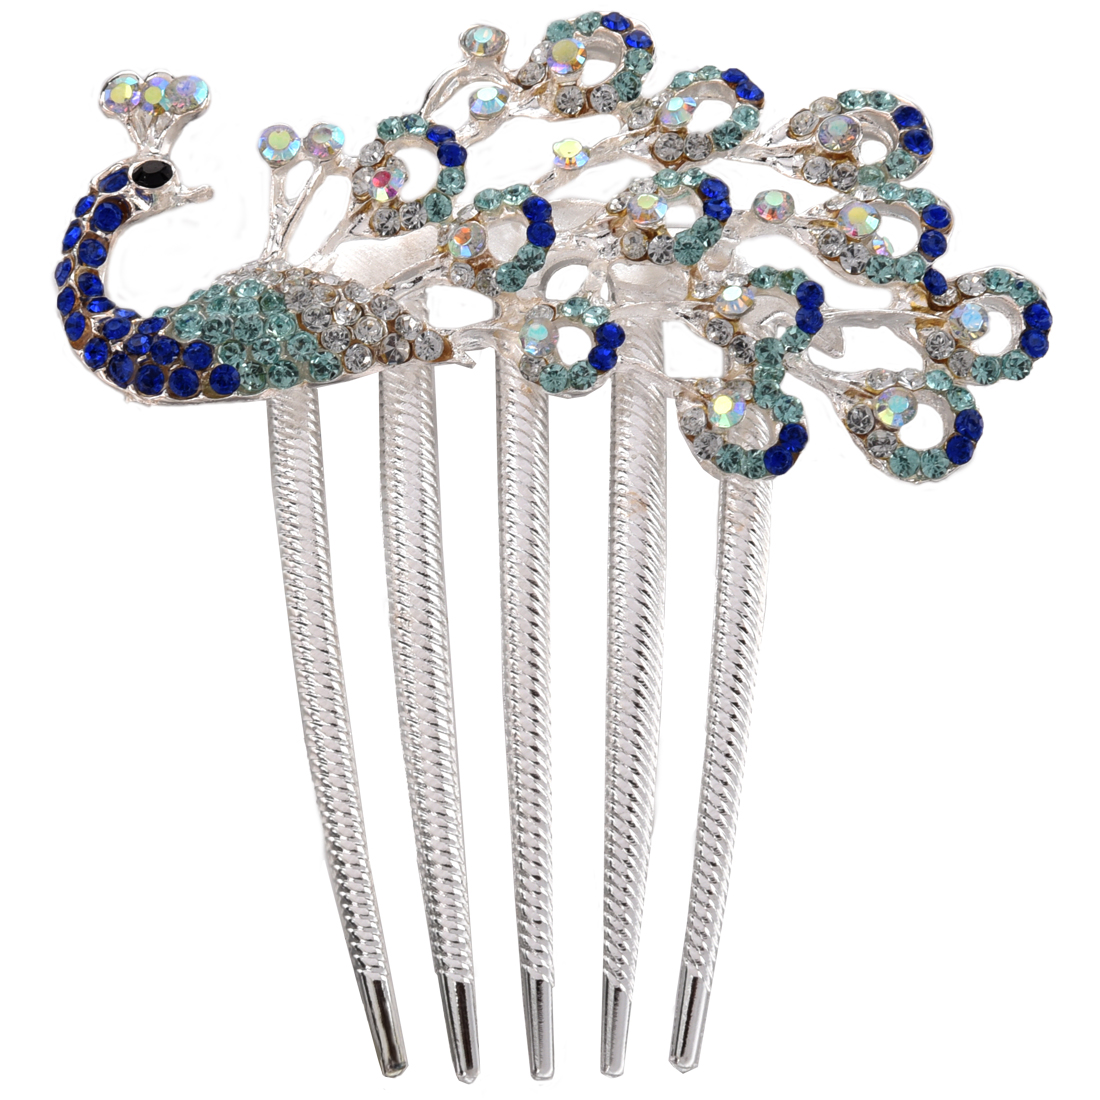 Crystal Peacock Hair Clip Lovely Vintage Jewelry Comb As Beauty Tool For Girls At Party Or Daily Use